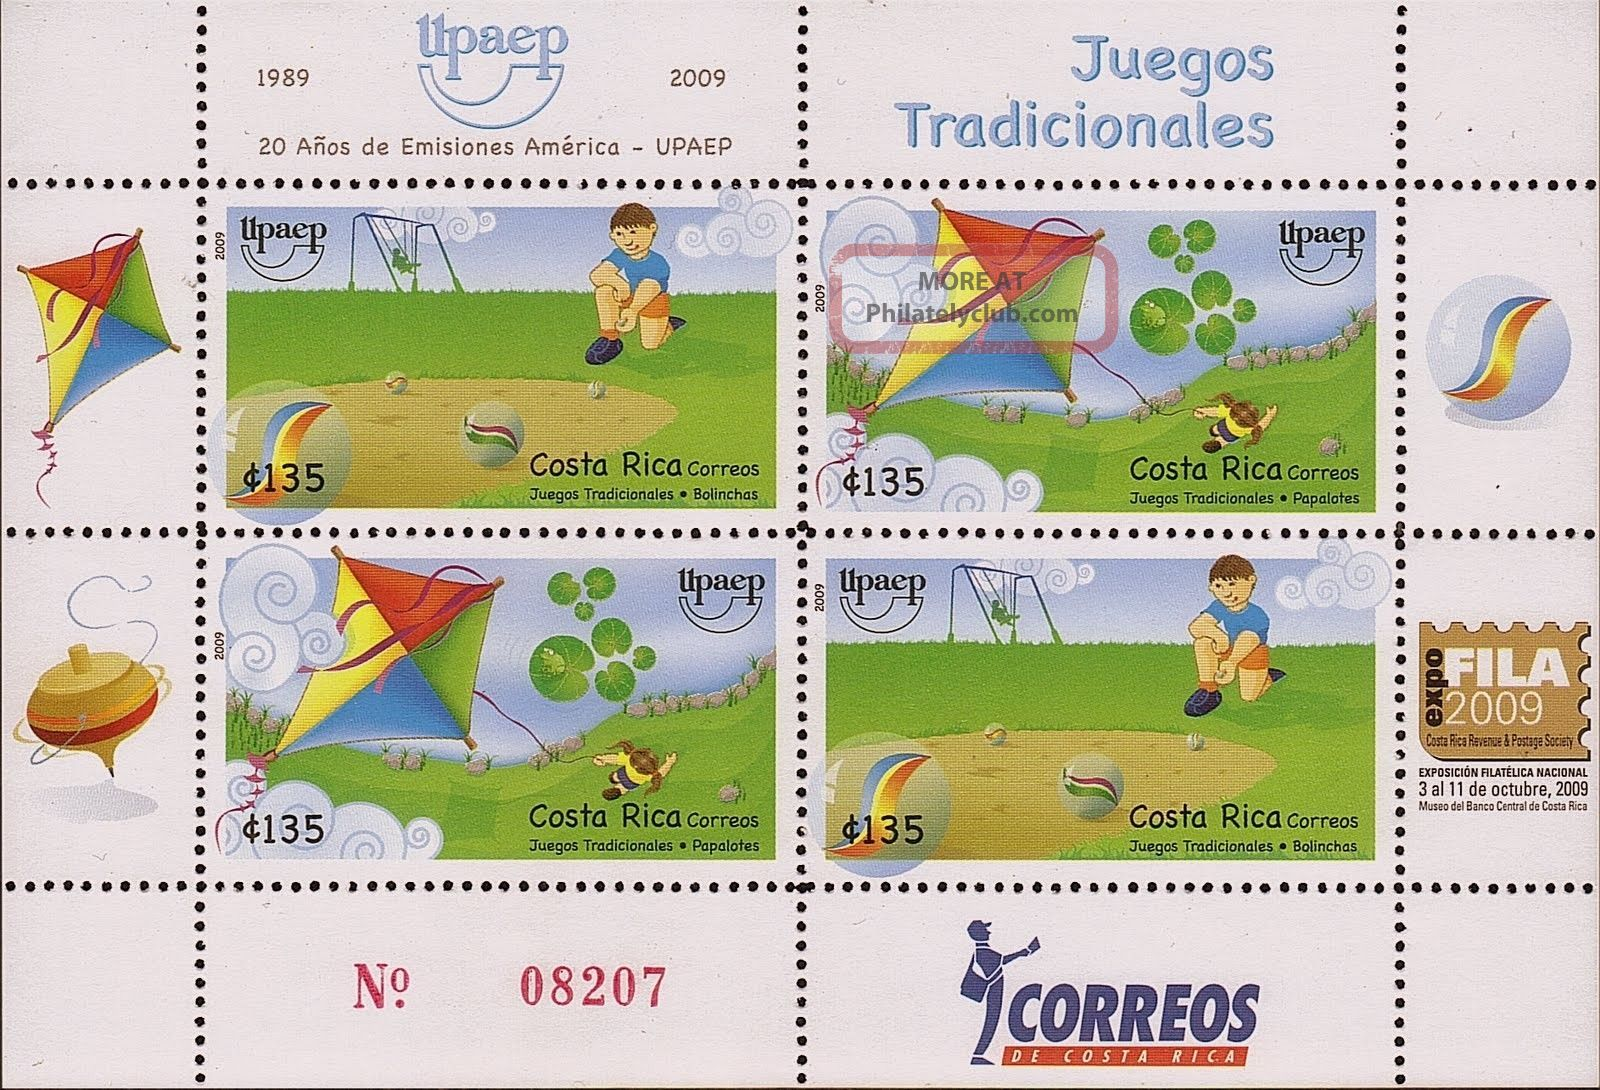 Costa Rica Upaep America Issue,  Traditional Games Sc 631 2009 Latin America photo